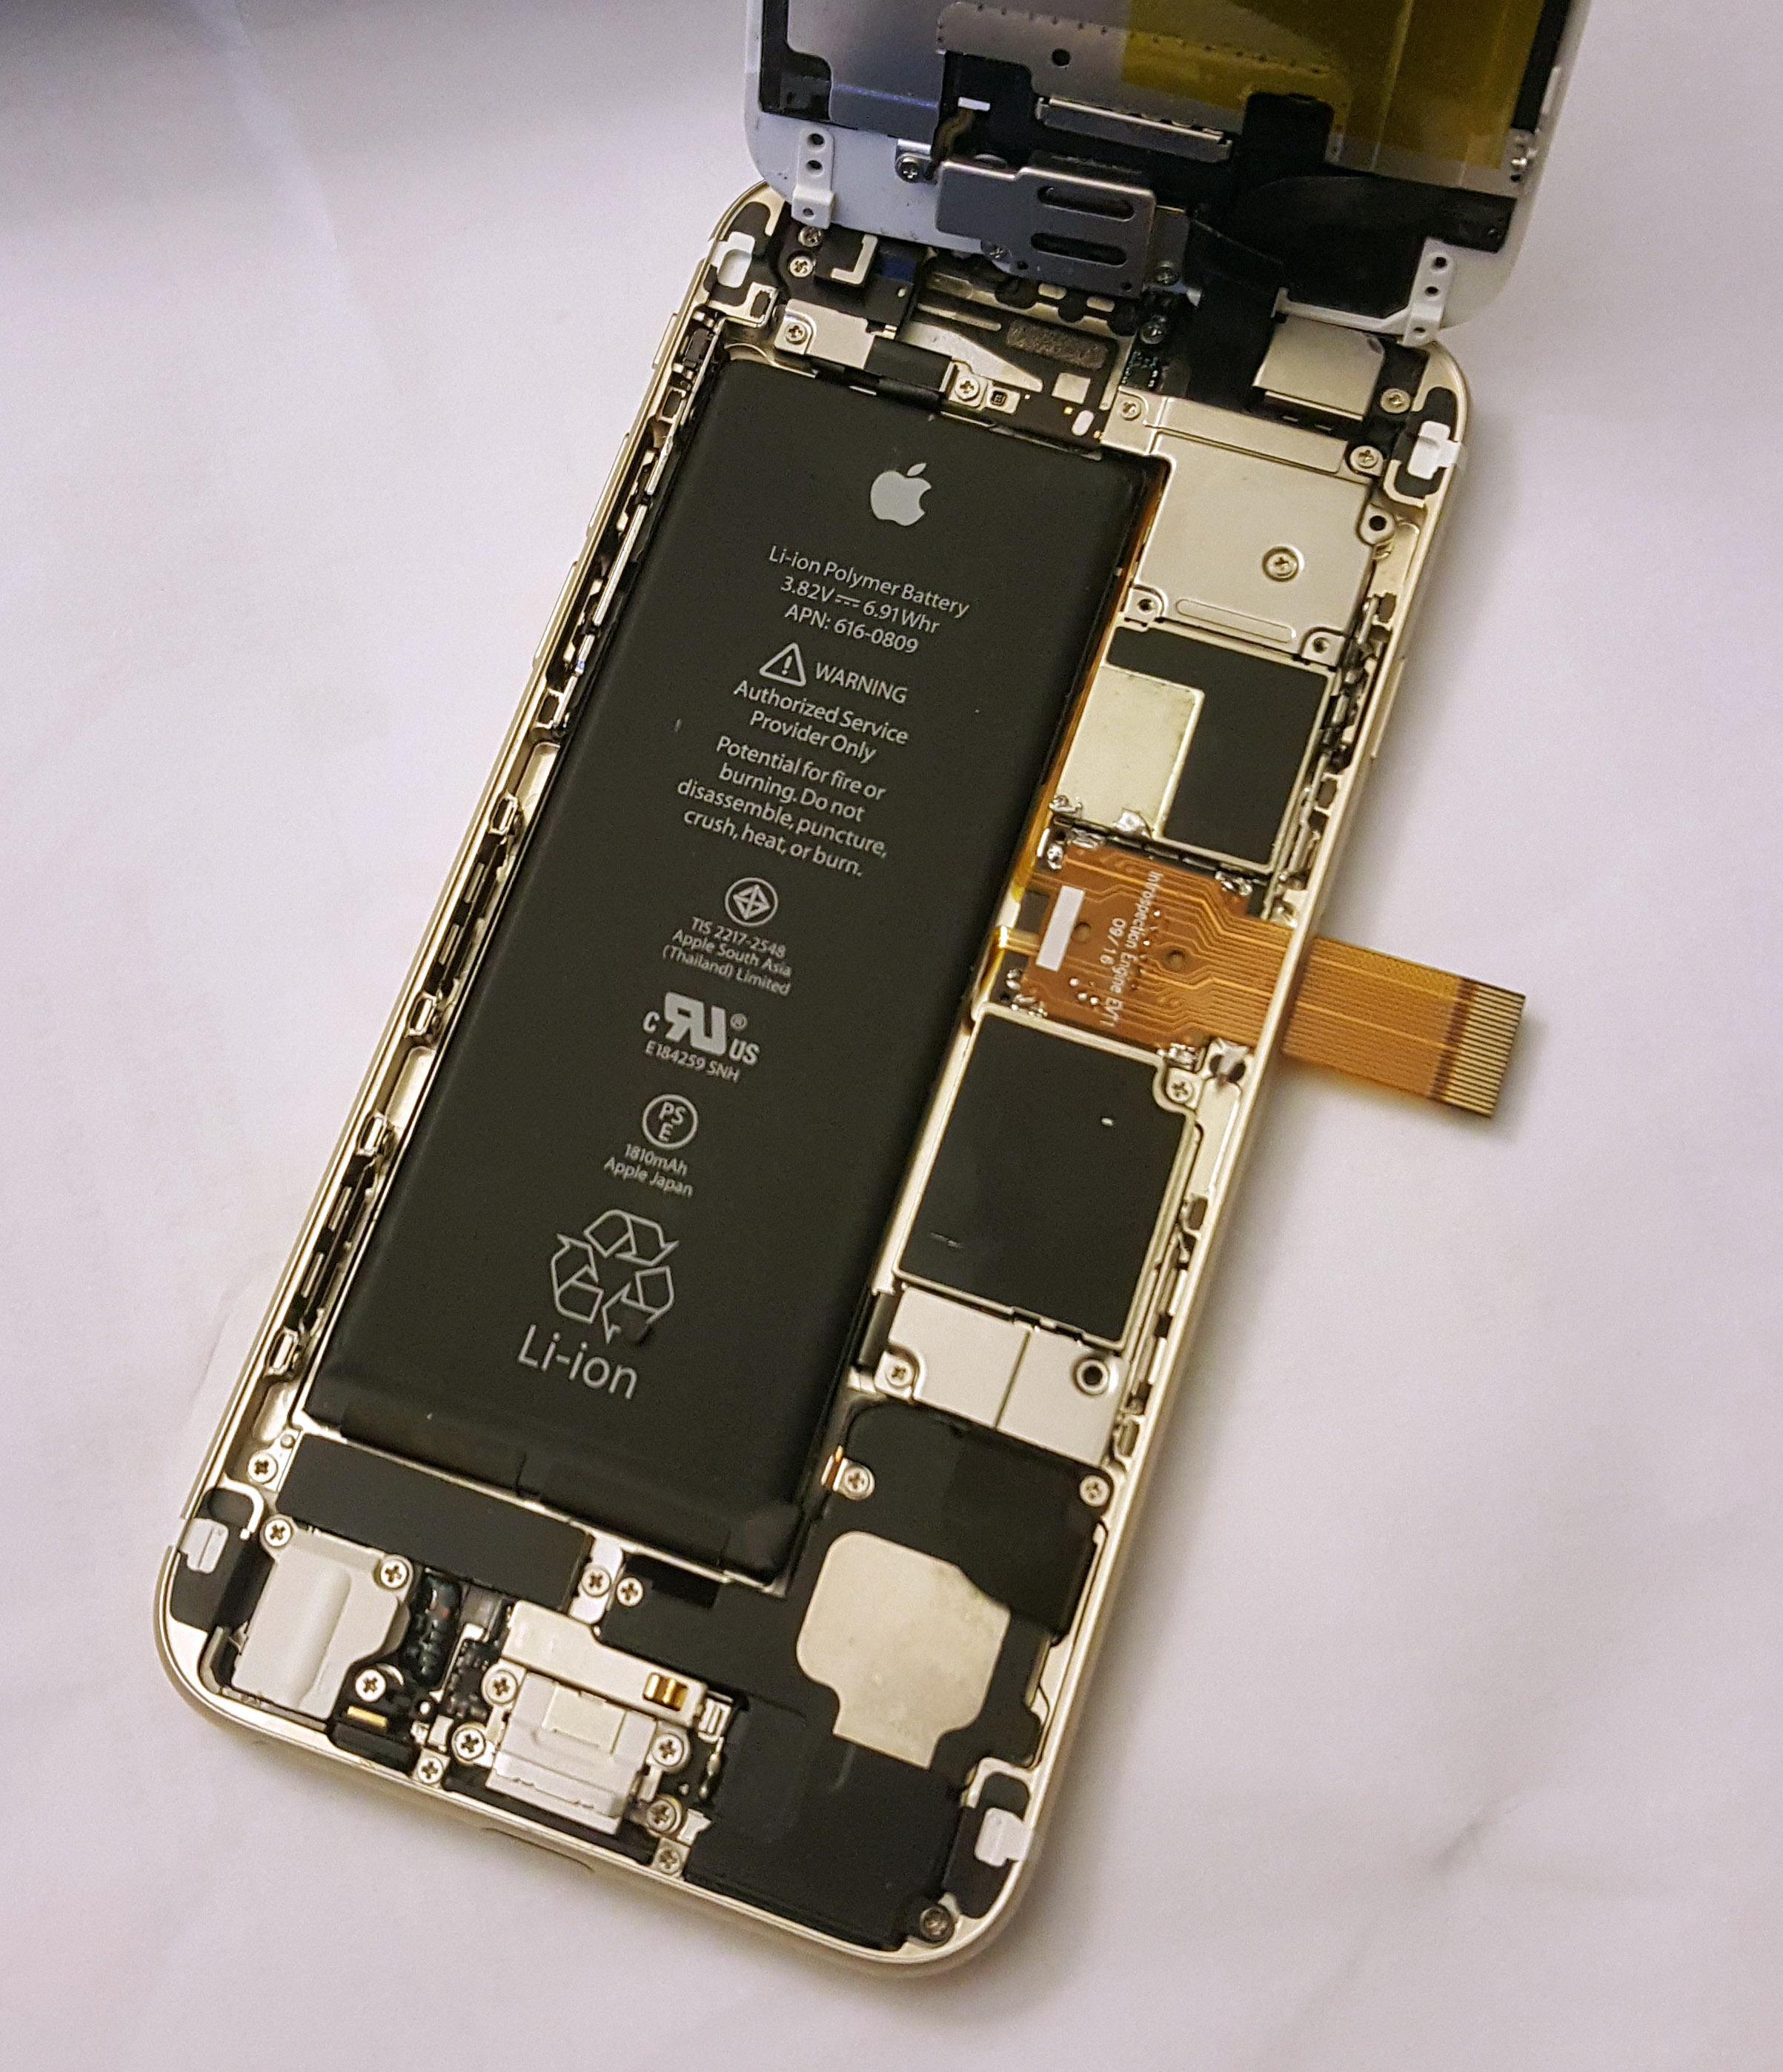 No Disassemble Short Circuit See More 3 Theguardian Com Against The Law Countering Lawful Abuses Of Digital Surveillance Figure 15 Tap Board As Installed On An Iphone6 Motherboard Upper Front View Lower Back